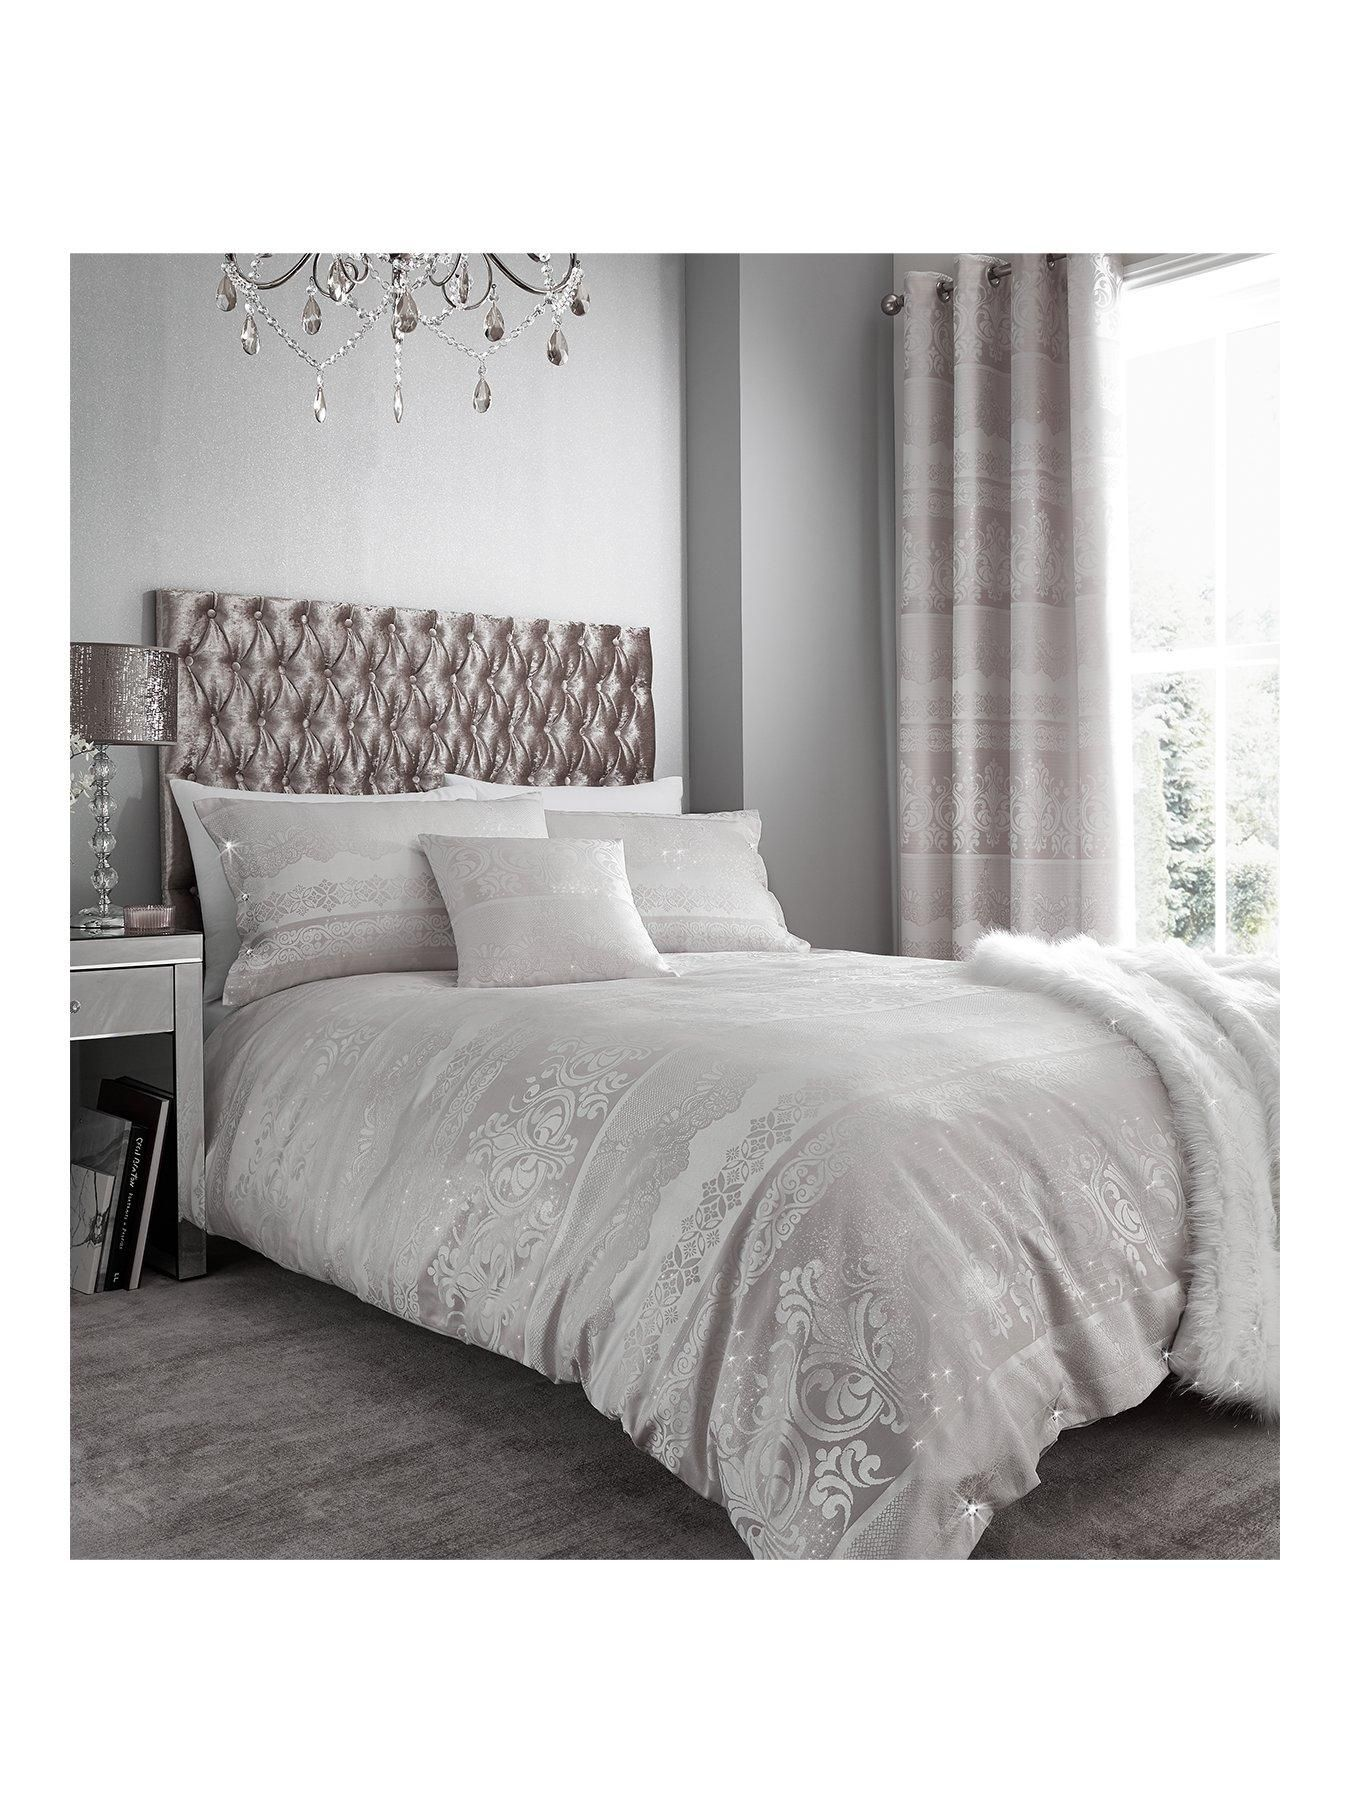 Womens Mens And Kids Fashion Furniture Electricals More Luxury Bedroom Sets Luxurious Bedrooms Bedroom Sets